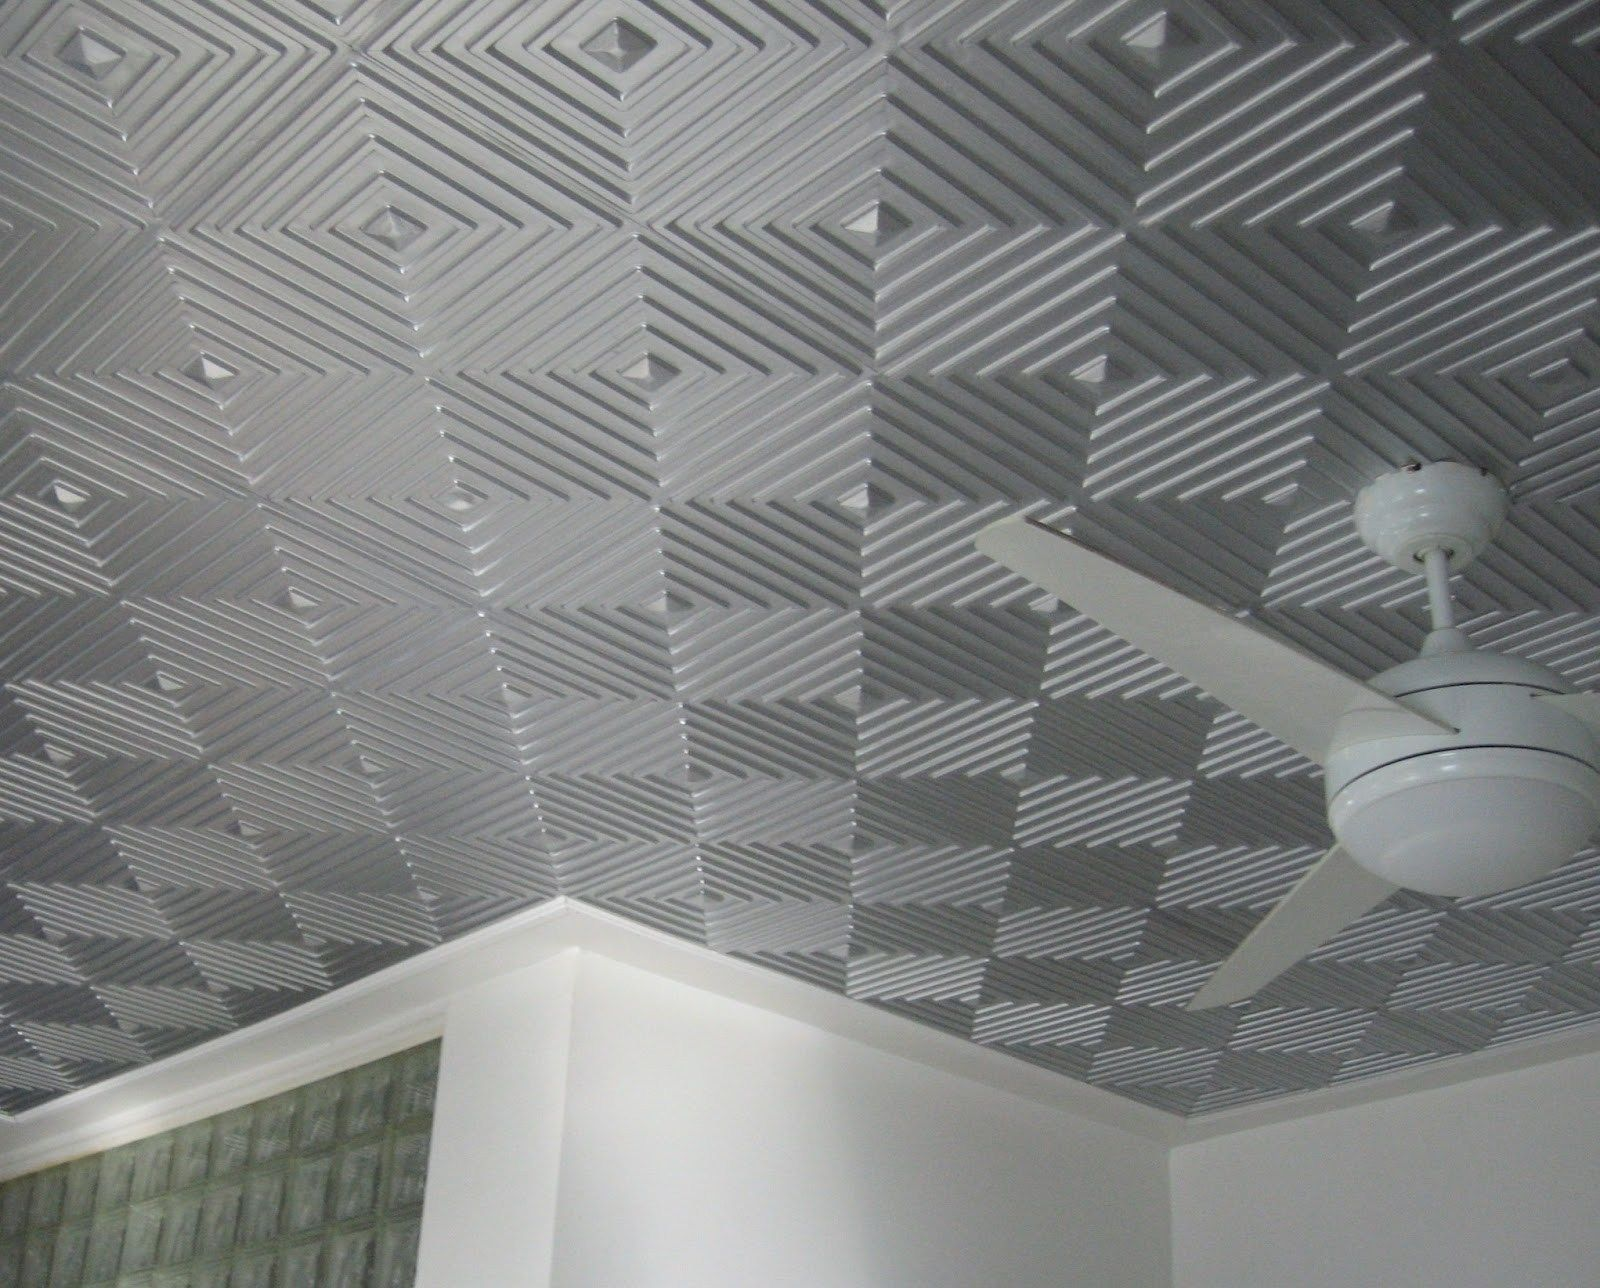 Best ceiling tile material httpcreativechairsandtables best ceiling tile material dailygadgetfo Image collections